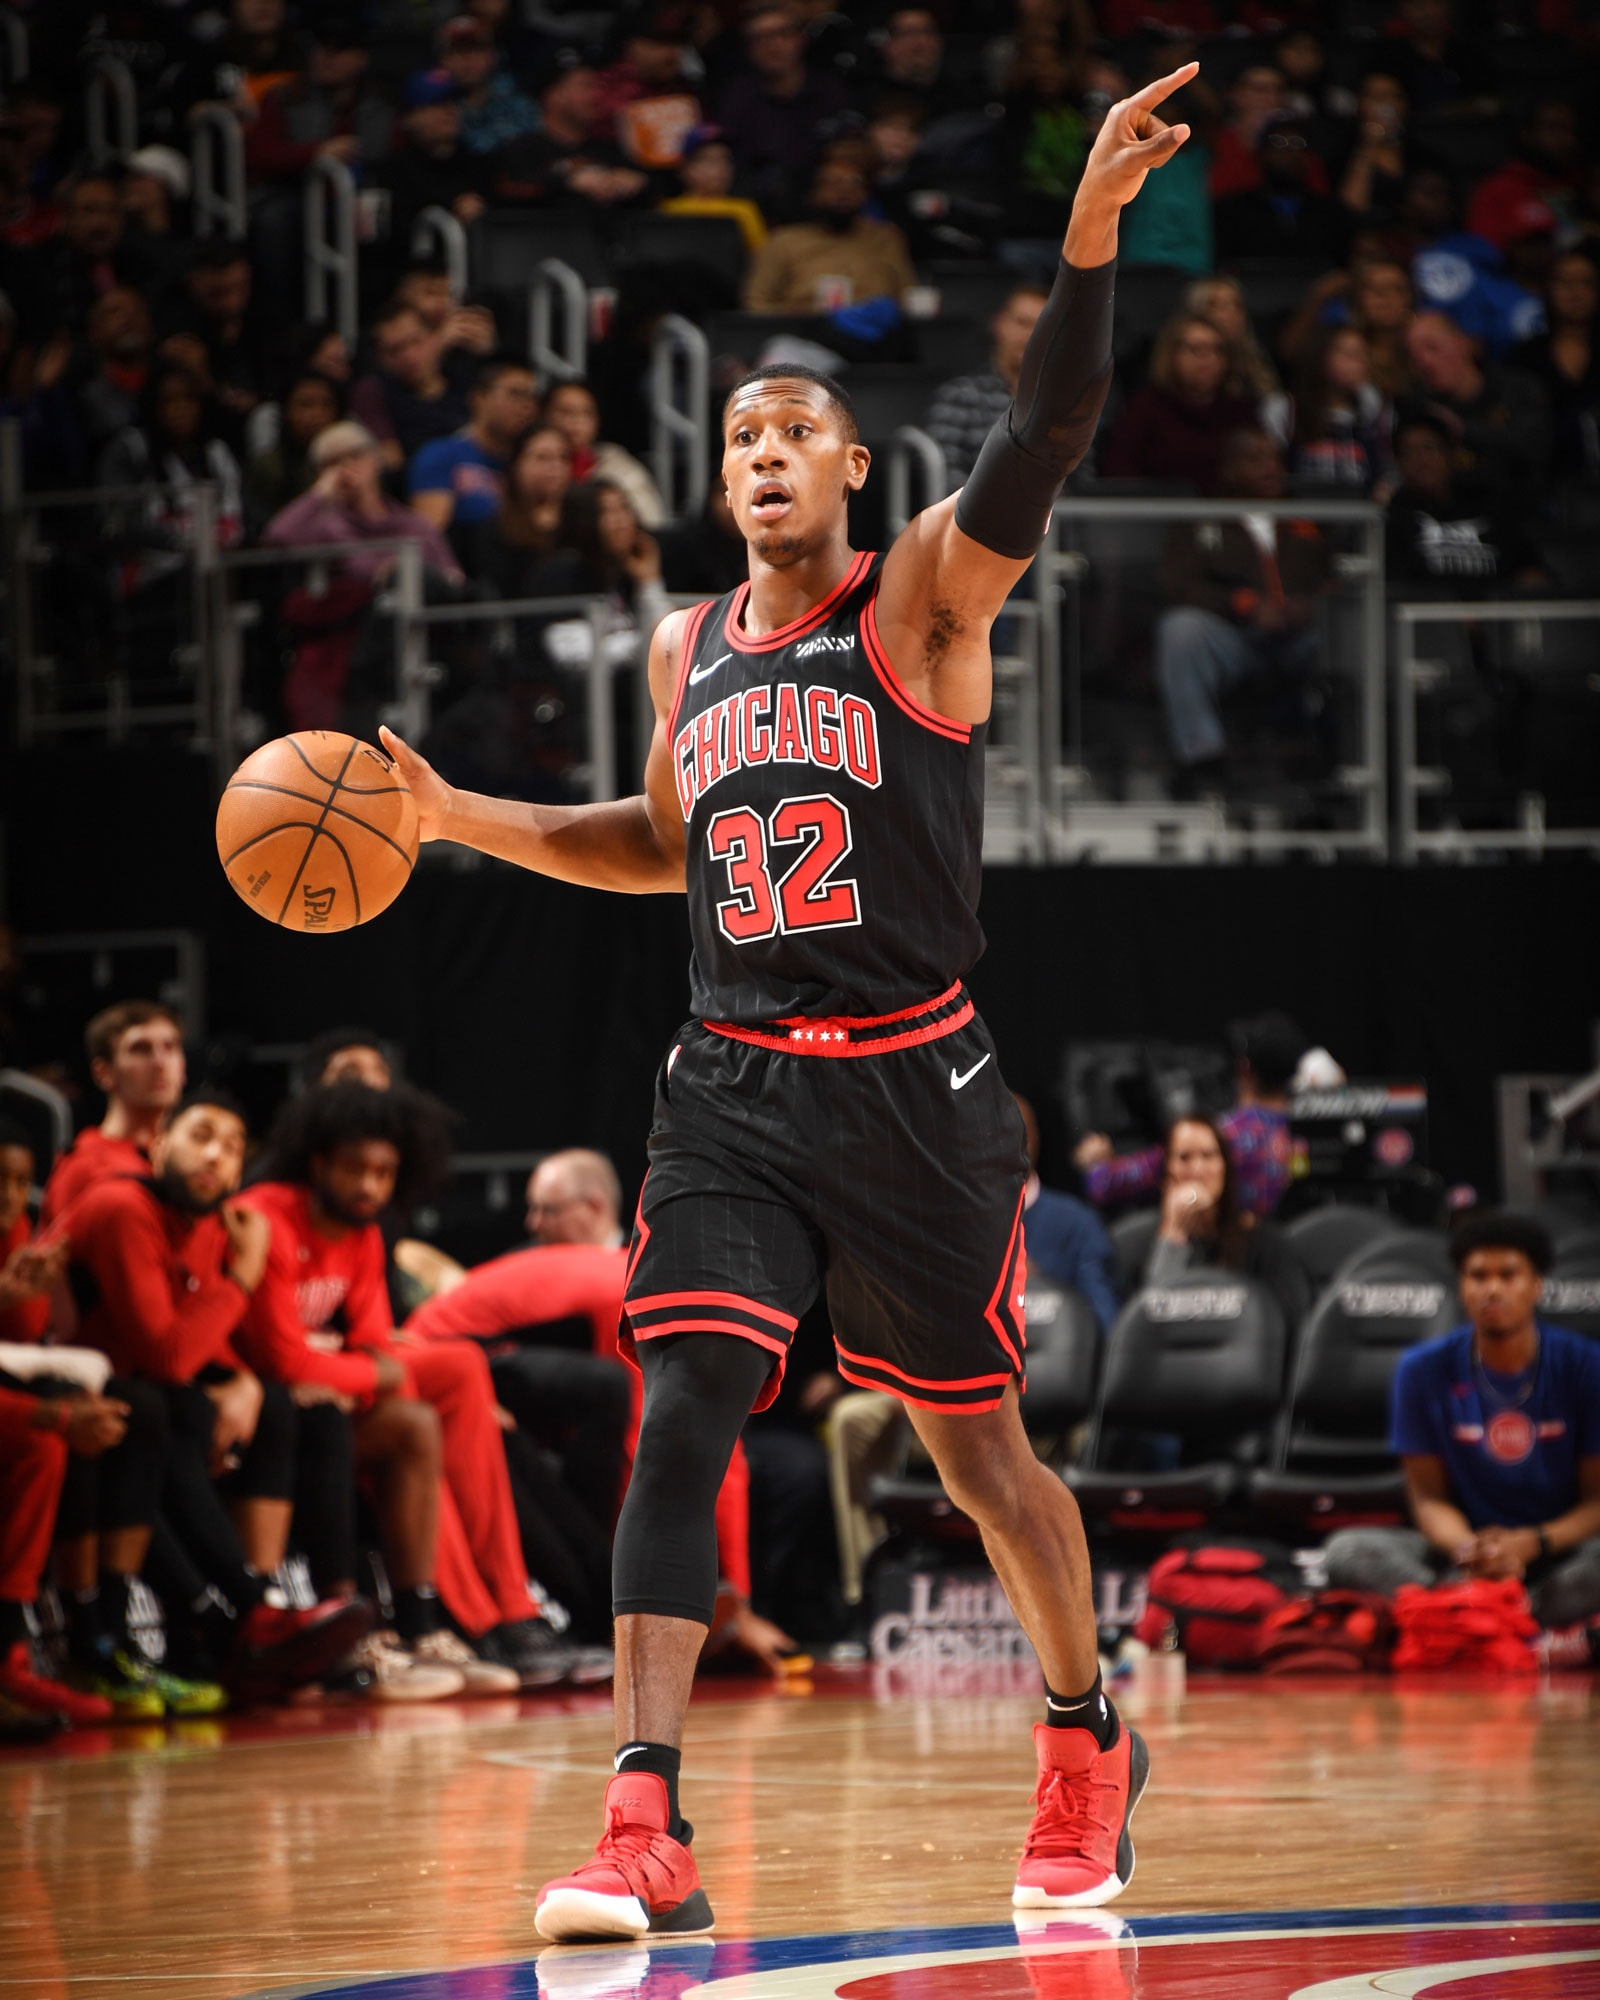 Kris Dunn directs the team against the Pistons